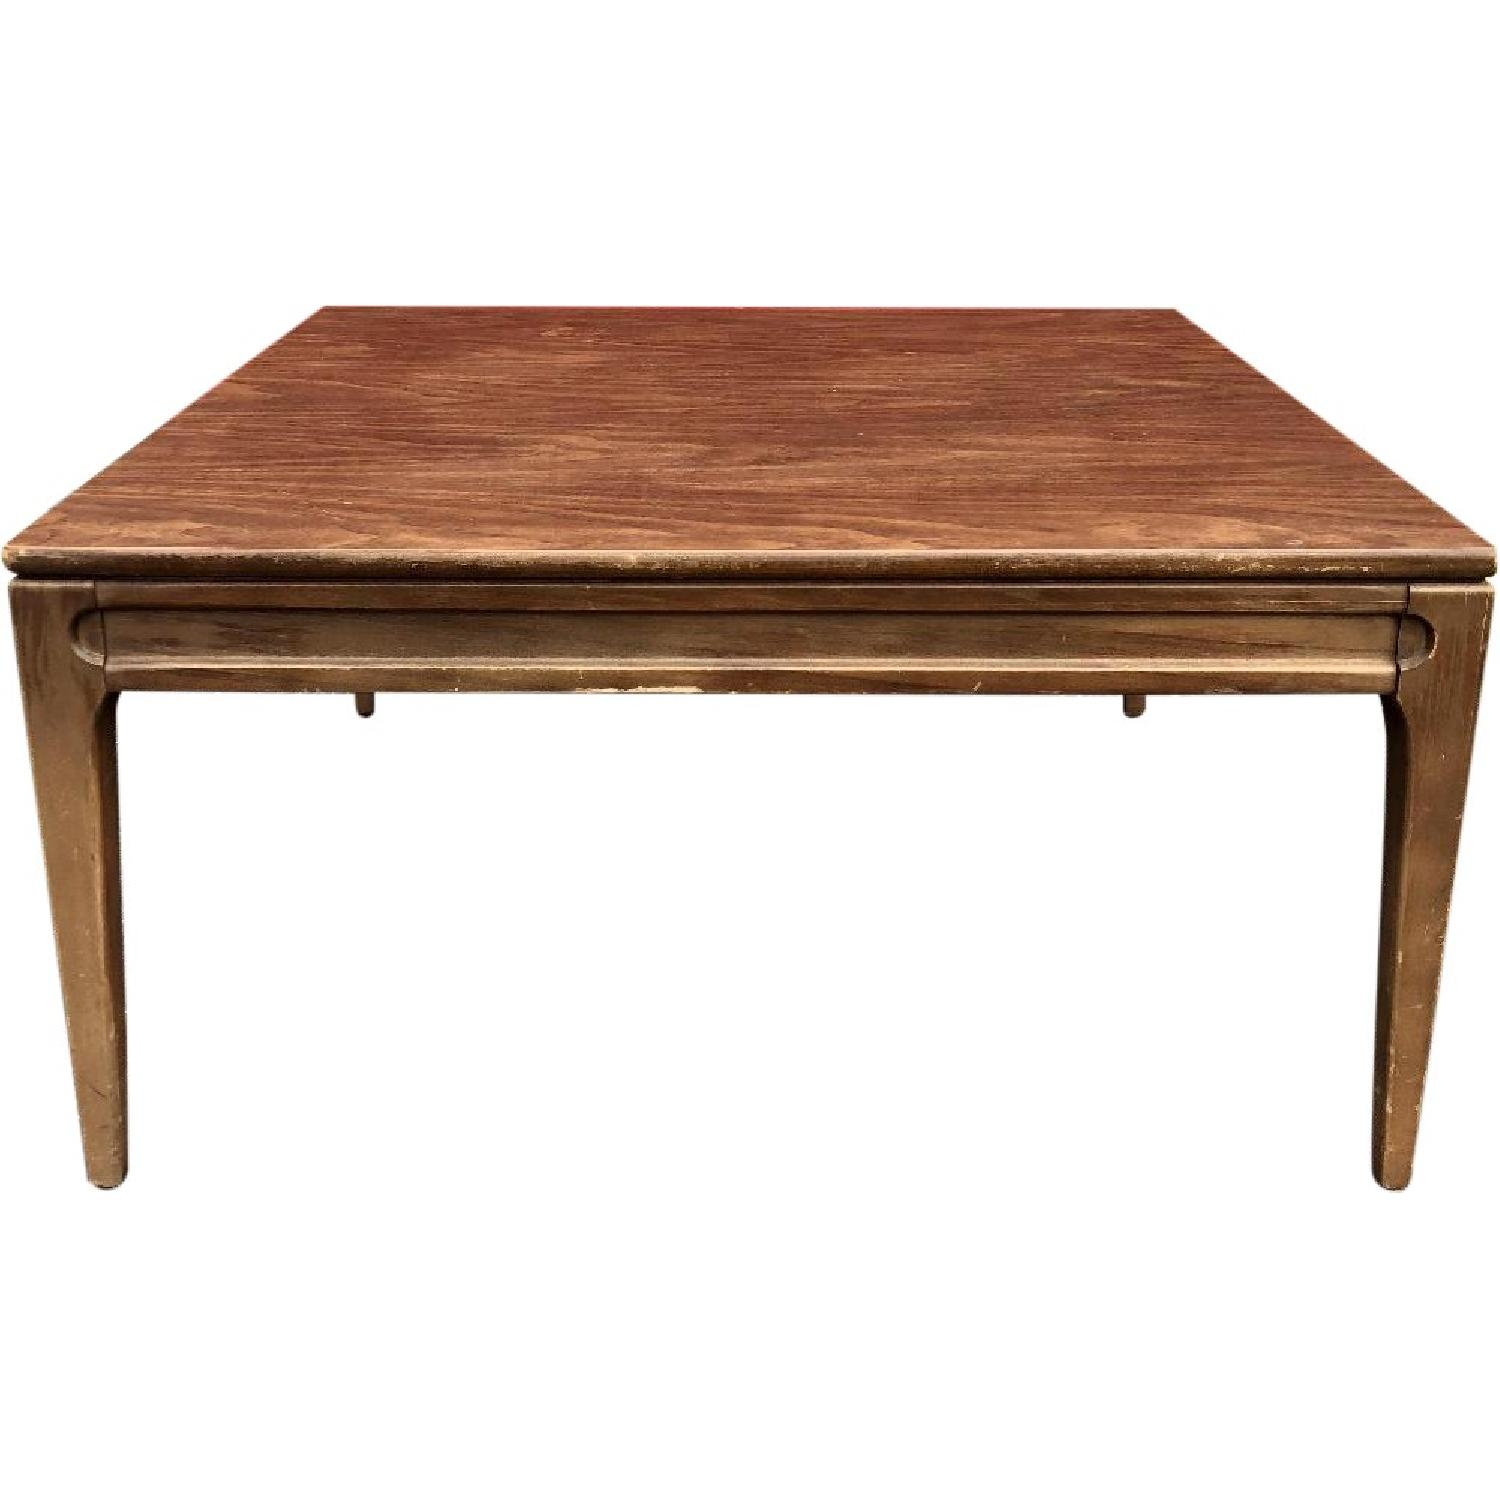 Mersman Mid Century Modern Square Coffee Table